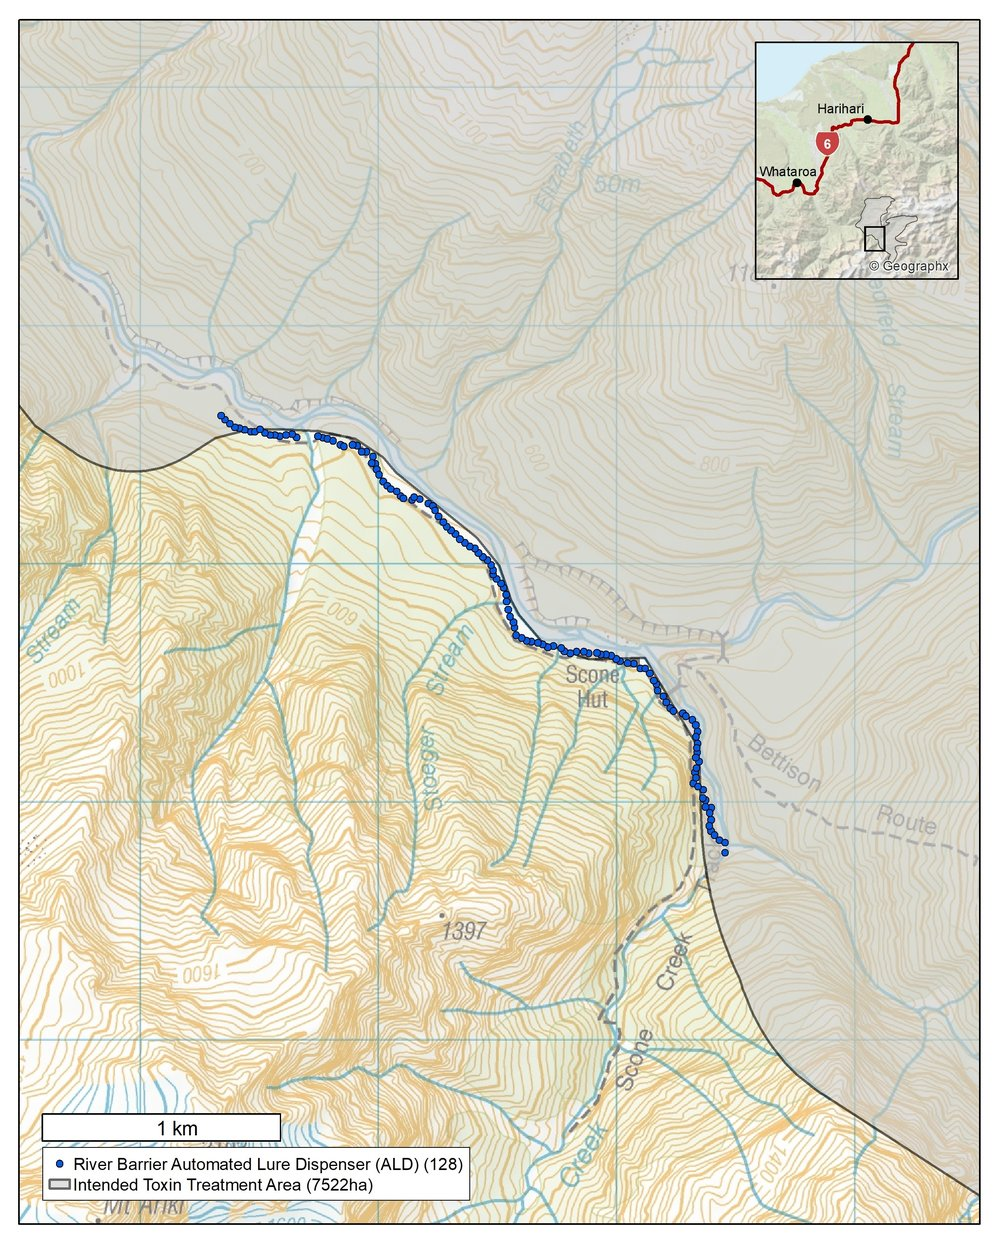 Map of river barrier assessment site, Perth Rive r